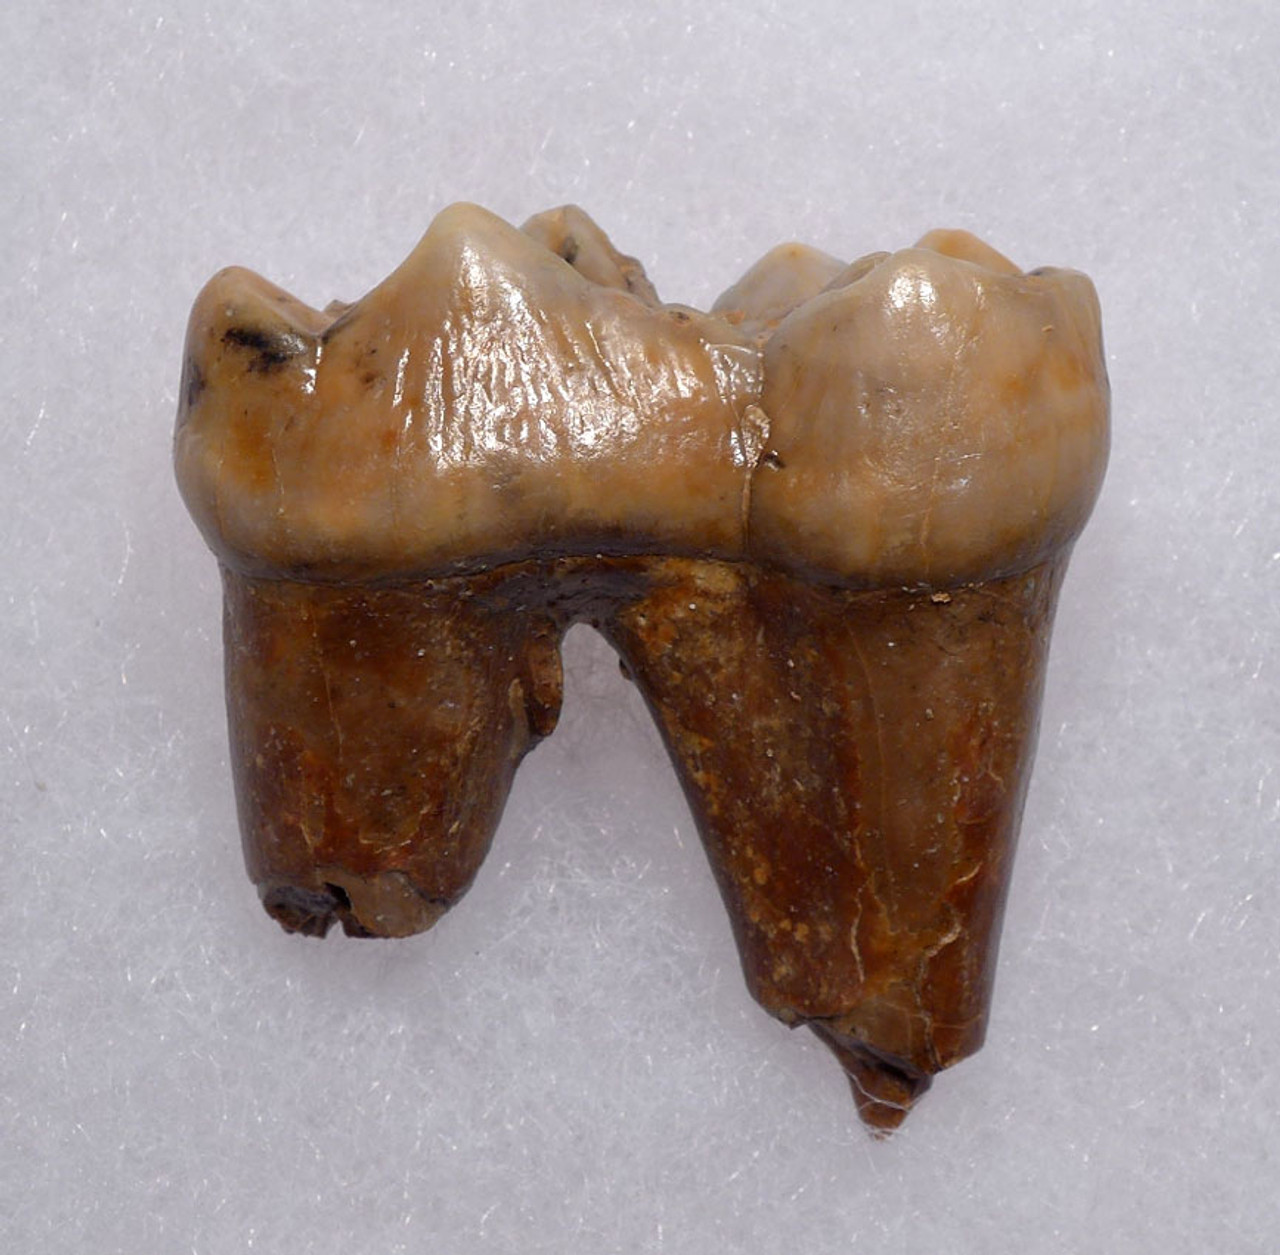 CAVE BEAR FOSSIL MOLAR TOOTH WITH ROOT FROM THE FAMOUS DRACHENHOHLE DRAGONS CAVE IN AUSTRIA *LMX239